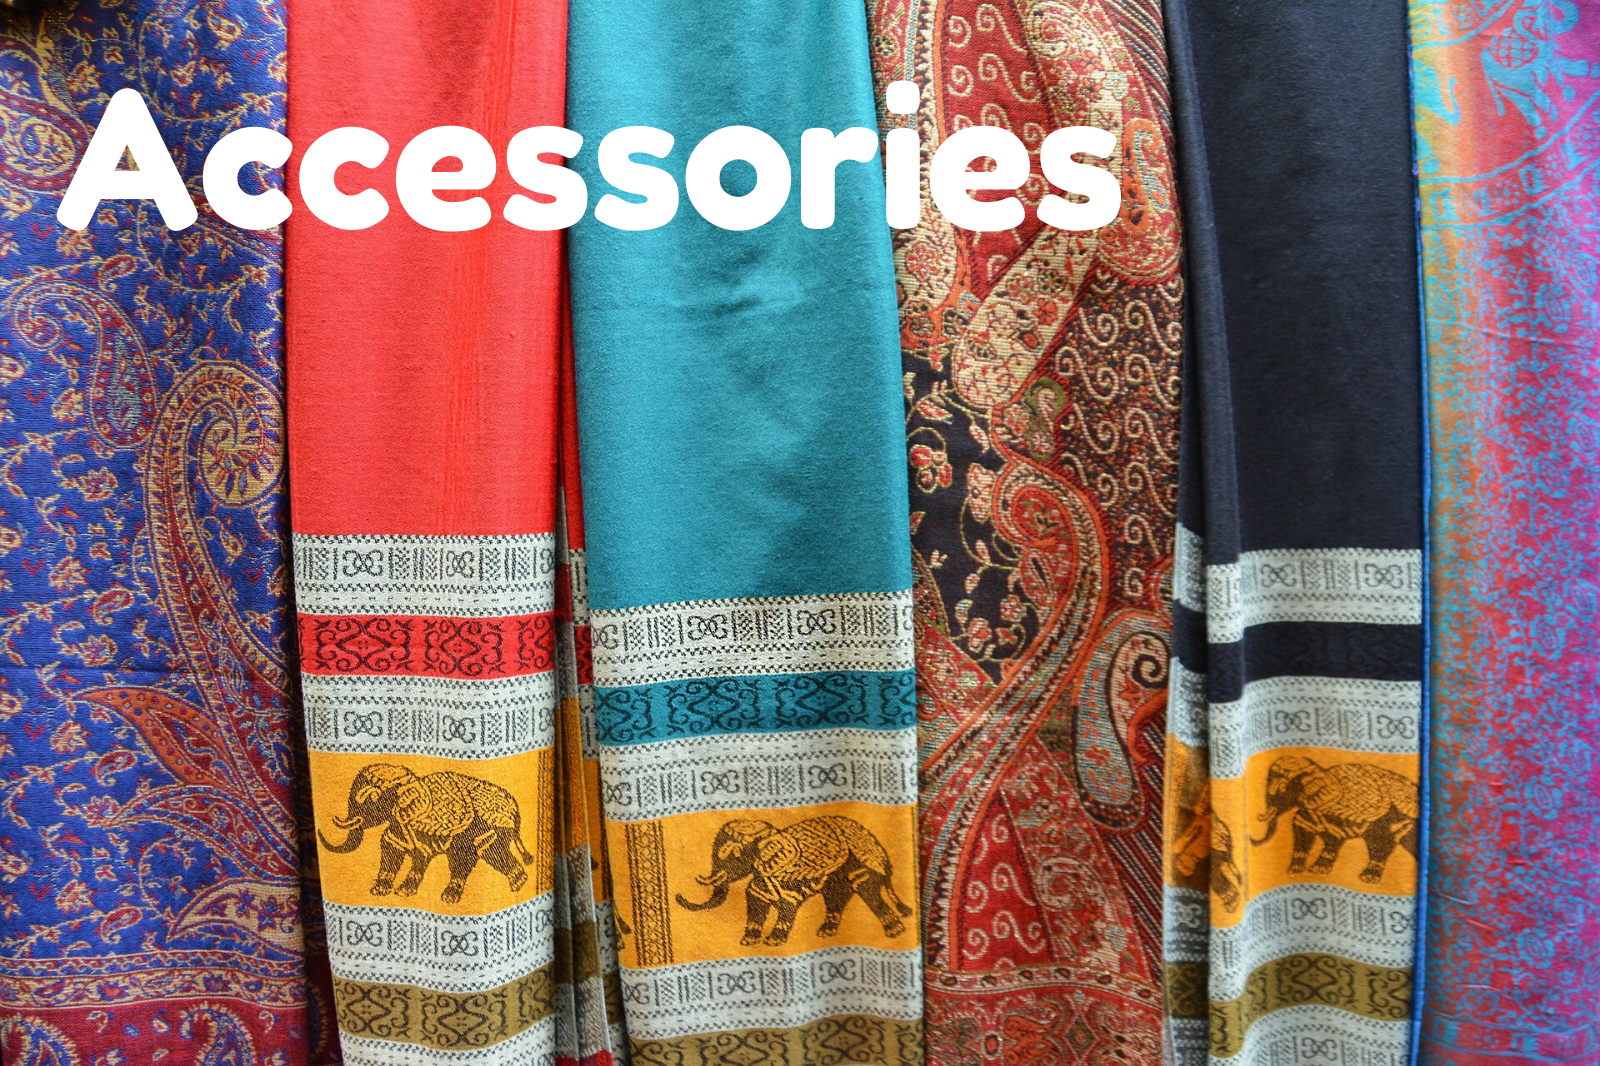 accessories dry cleaning and laundry